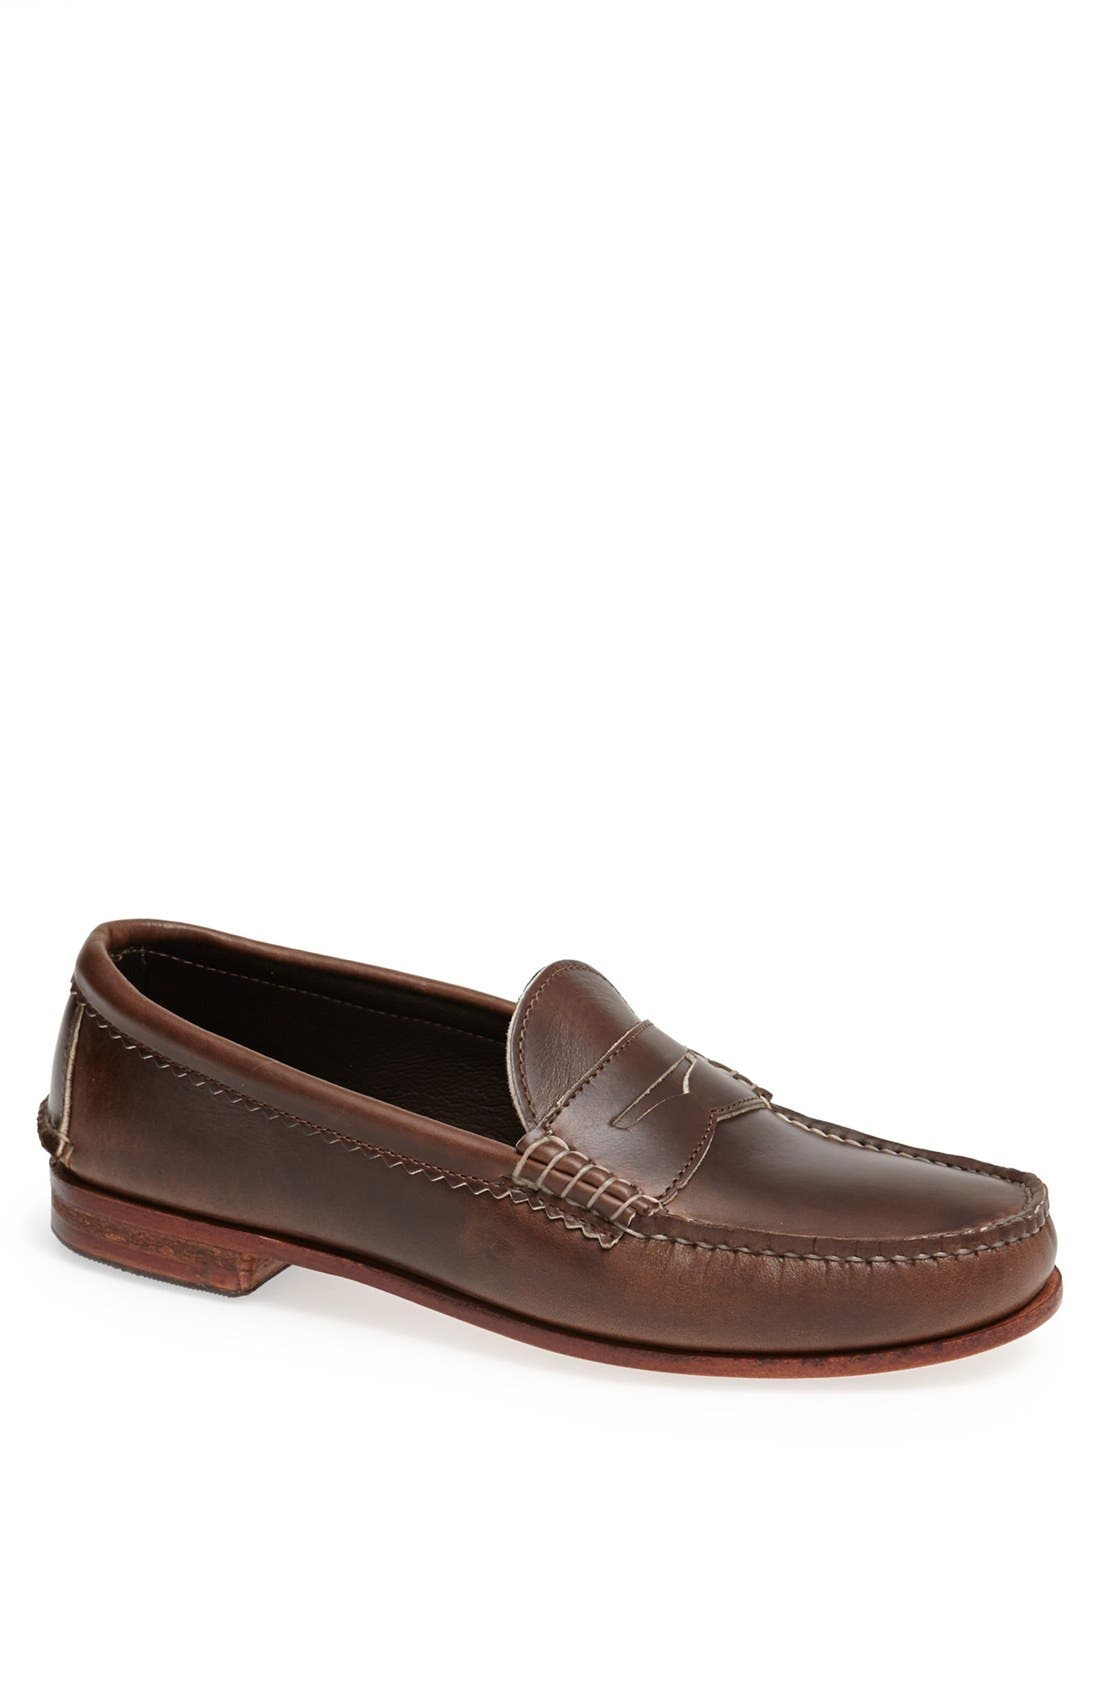 QUODDY 'True' Penny Loafer, Main, color, 204